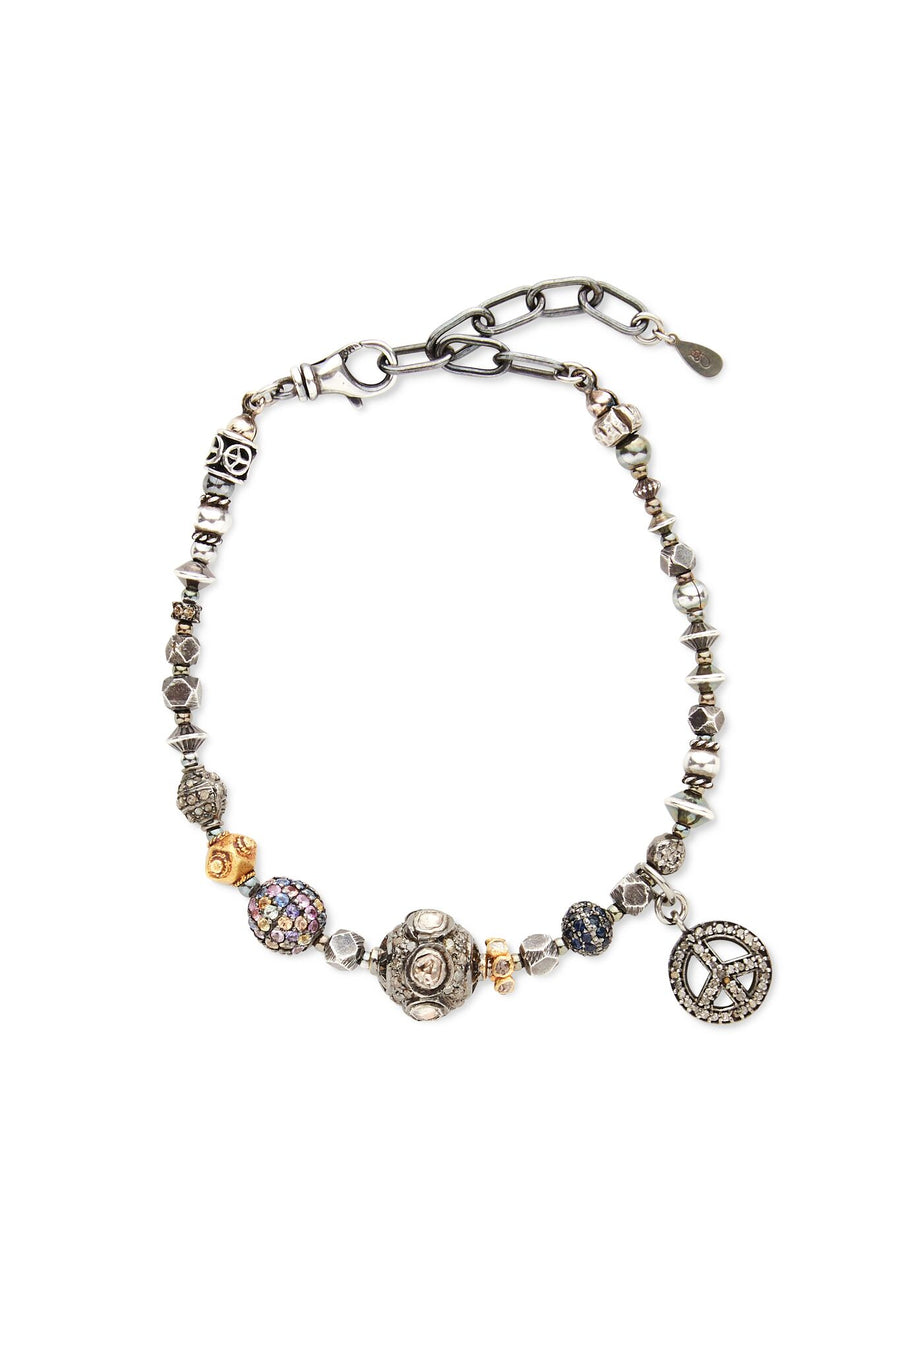 Sterling Silver with Gold, Diamonds, Precious and Semi-Precious Stones Peace Sign Capsule Bracelet